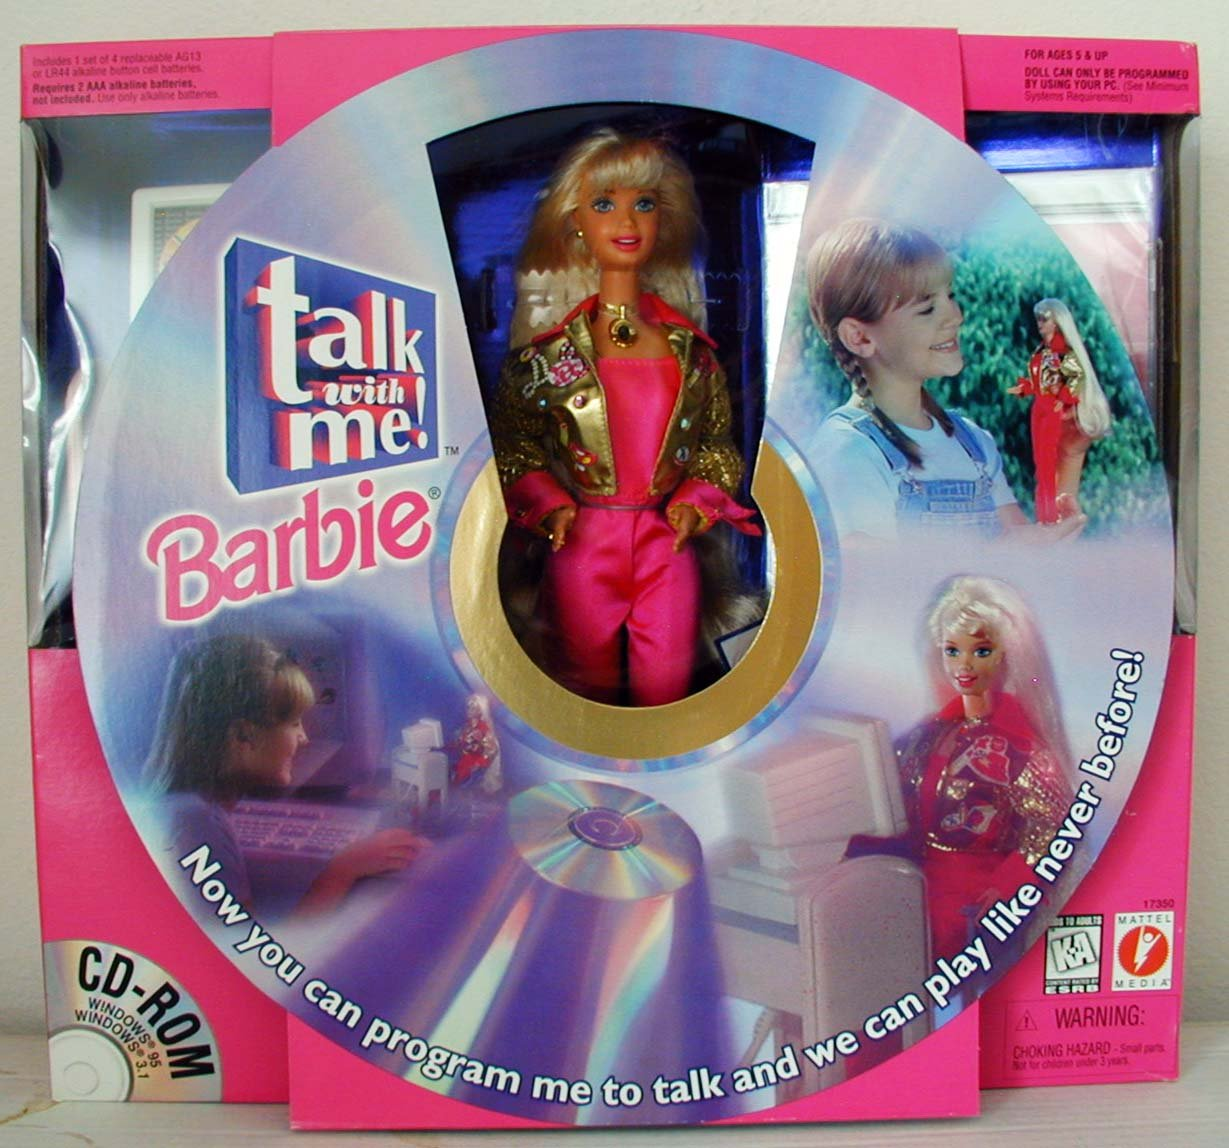 Talk with Me Barbie Doll W Cd ROM & More! (1997) [Toy] Mattel 17350